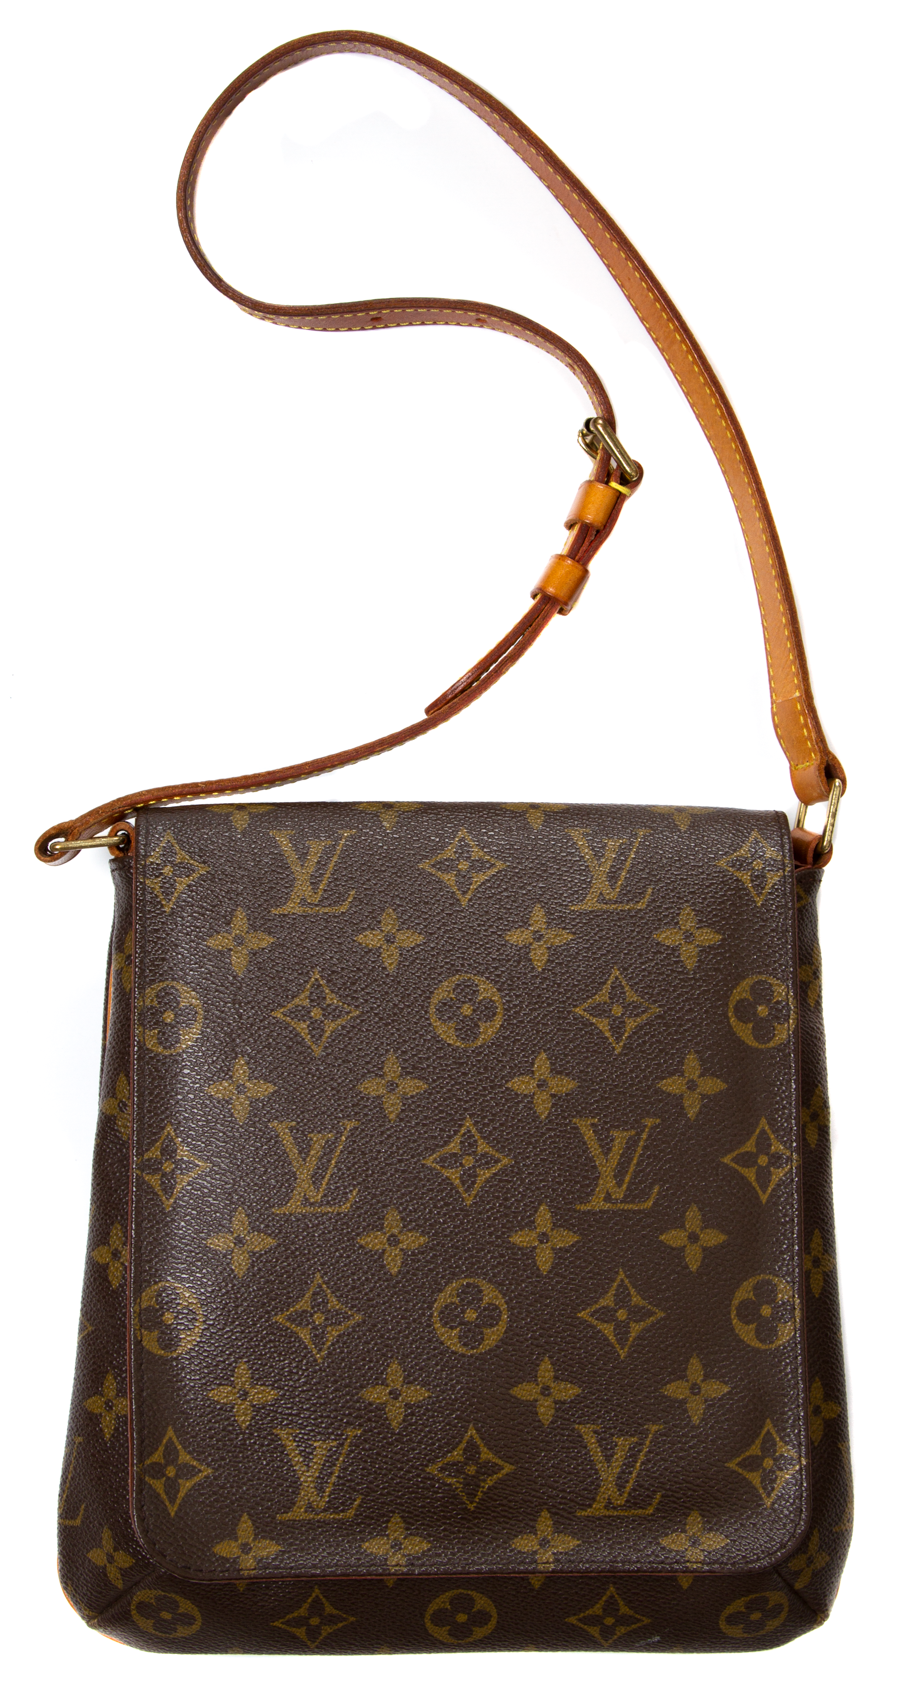 0dc4685162 www.lv-outletonline.at.nr $161.9 Louisvuitton is on clearance sale, the  world lowest price. The best Christmas gift .